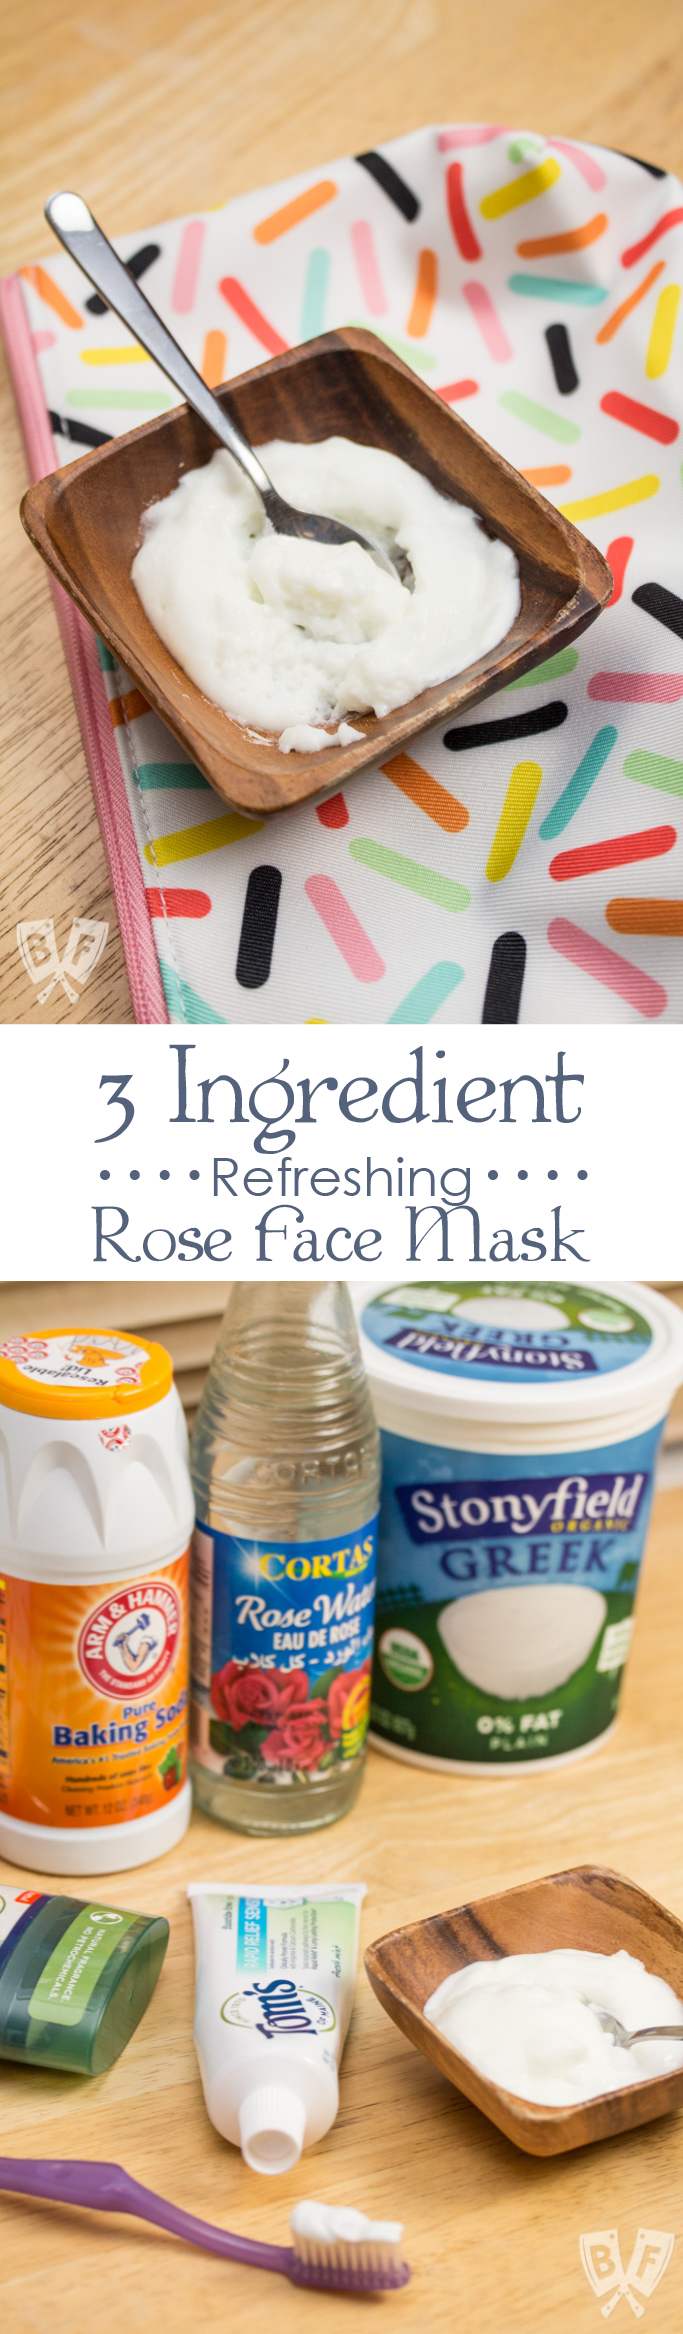 3 Ingredient Refreshing Rose Face Mask: This all natural beauty treatment gently exfoliates and moisturizes in just 5 minutes!